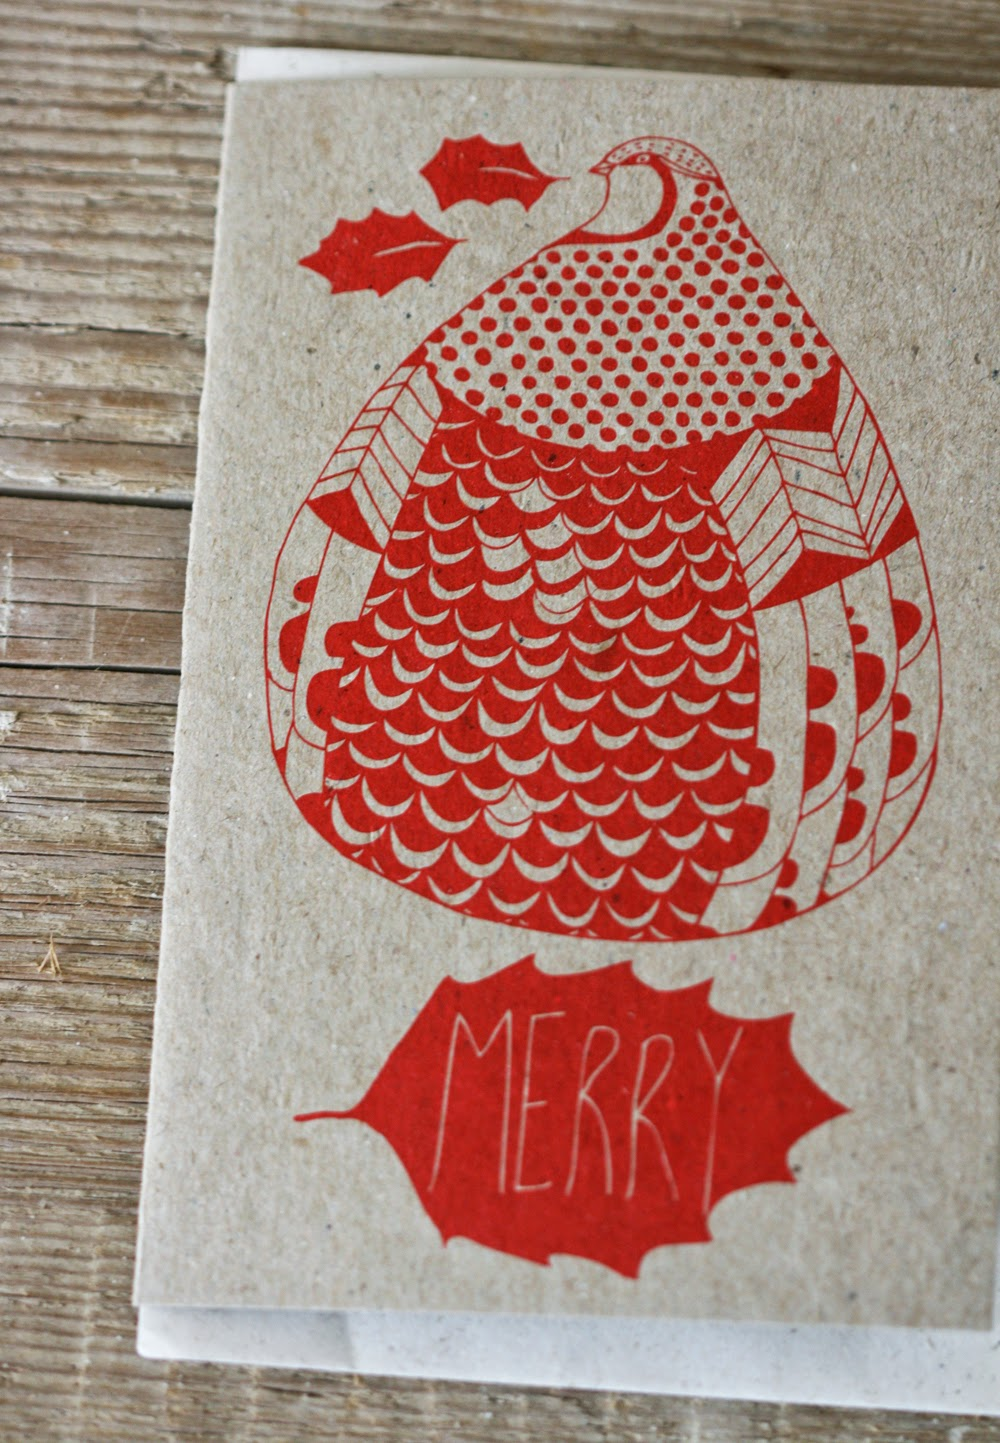 https://www.etsy.com/listing/207837829/merry-partridge-christmas-card?ref=shop_home_active_8